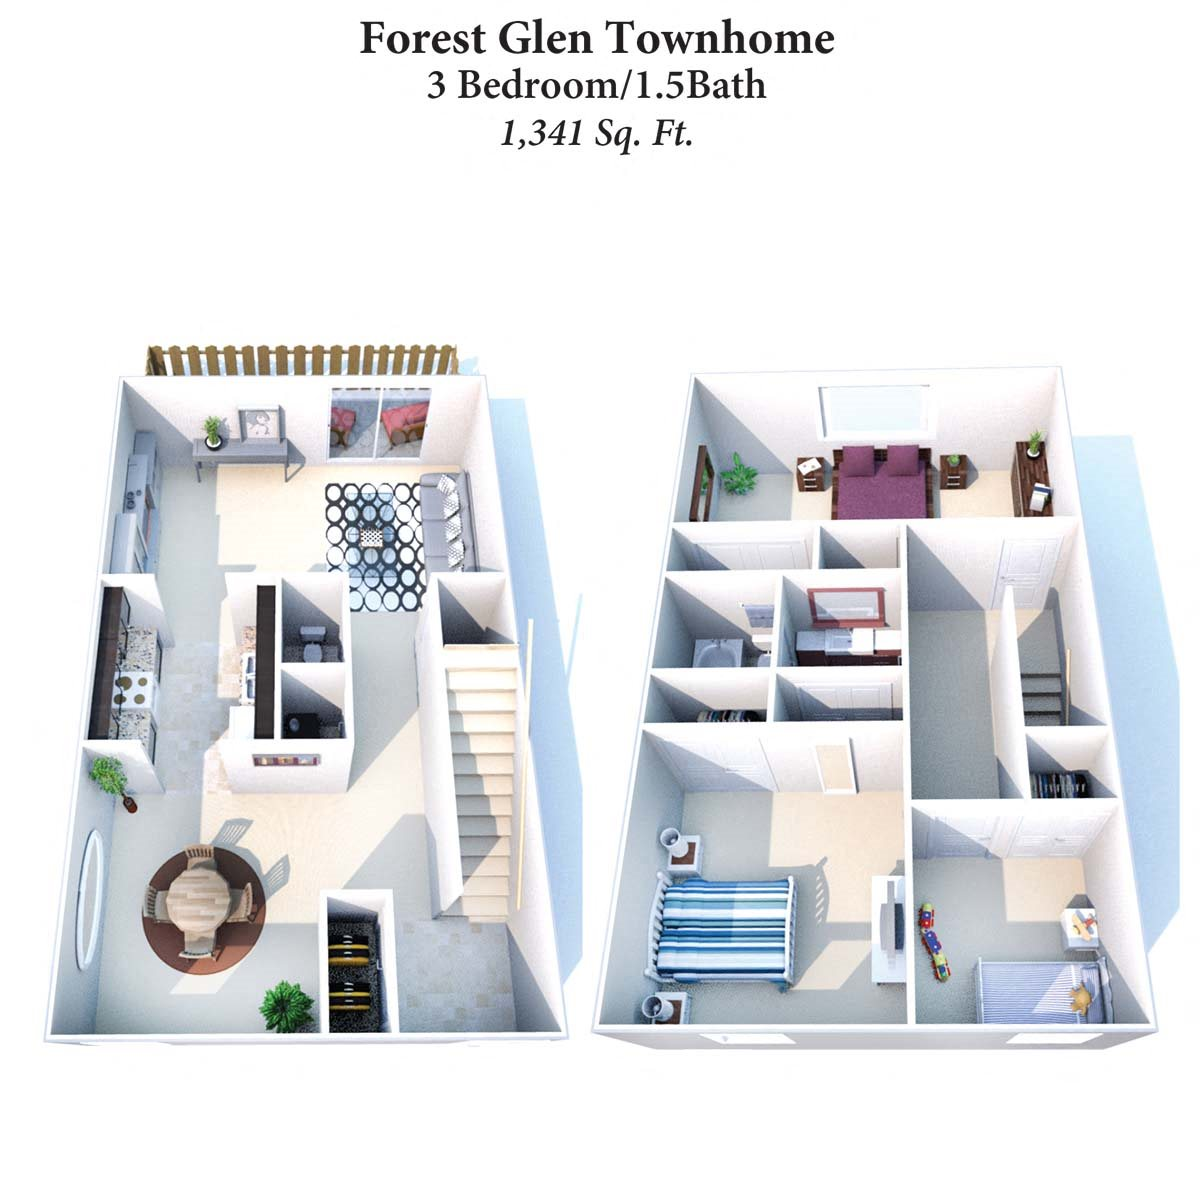 3B/1.5B Forest Glen Townhome 1,341SqFt Floor Plan 12